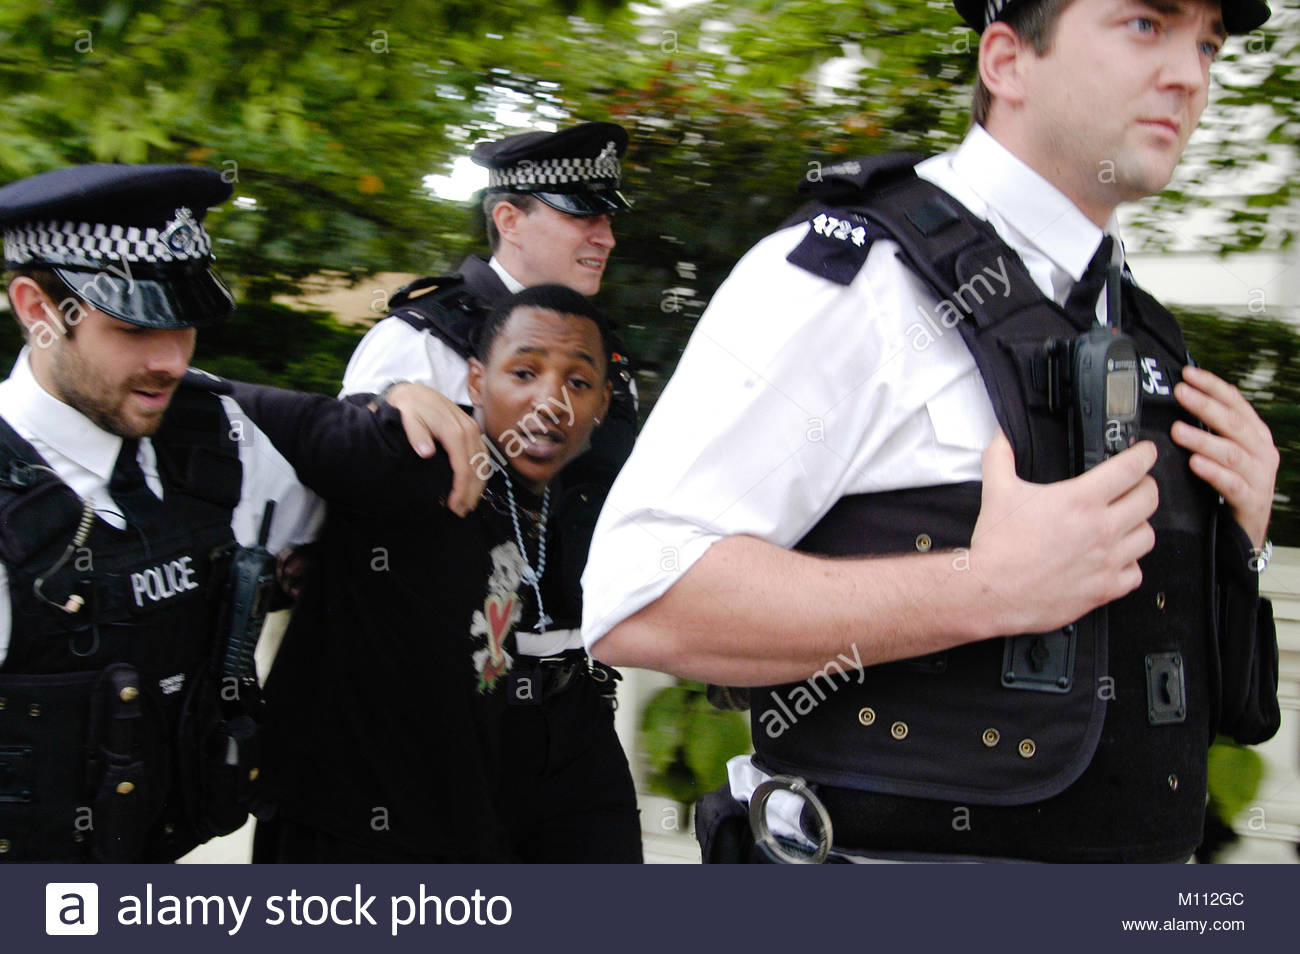 London UK 30th August 2010  Police carry out a stop and search in west London. - Stock Image